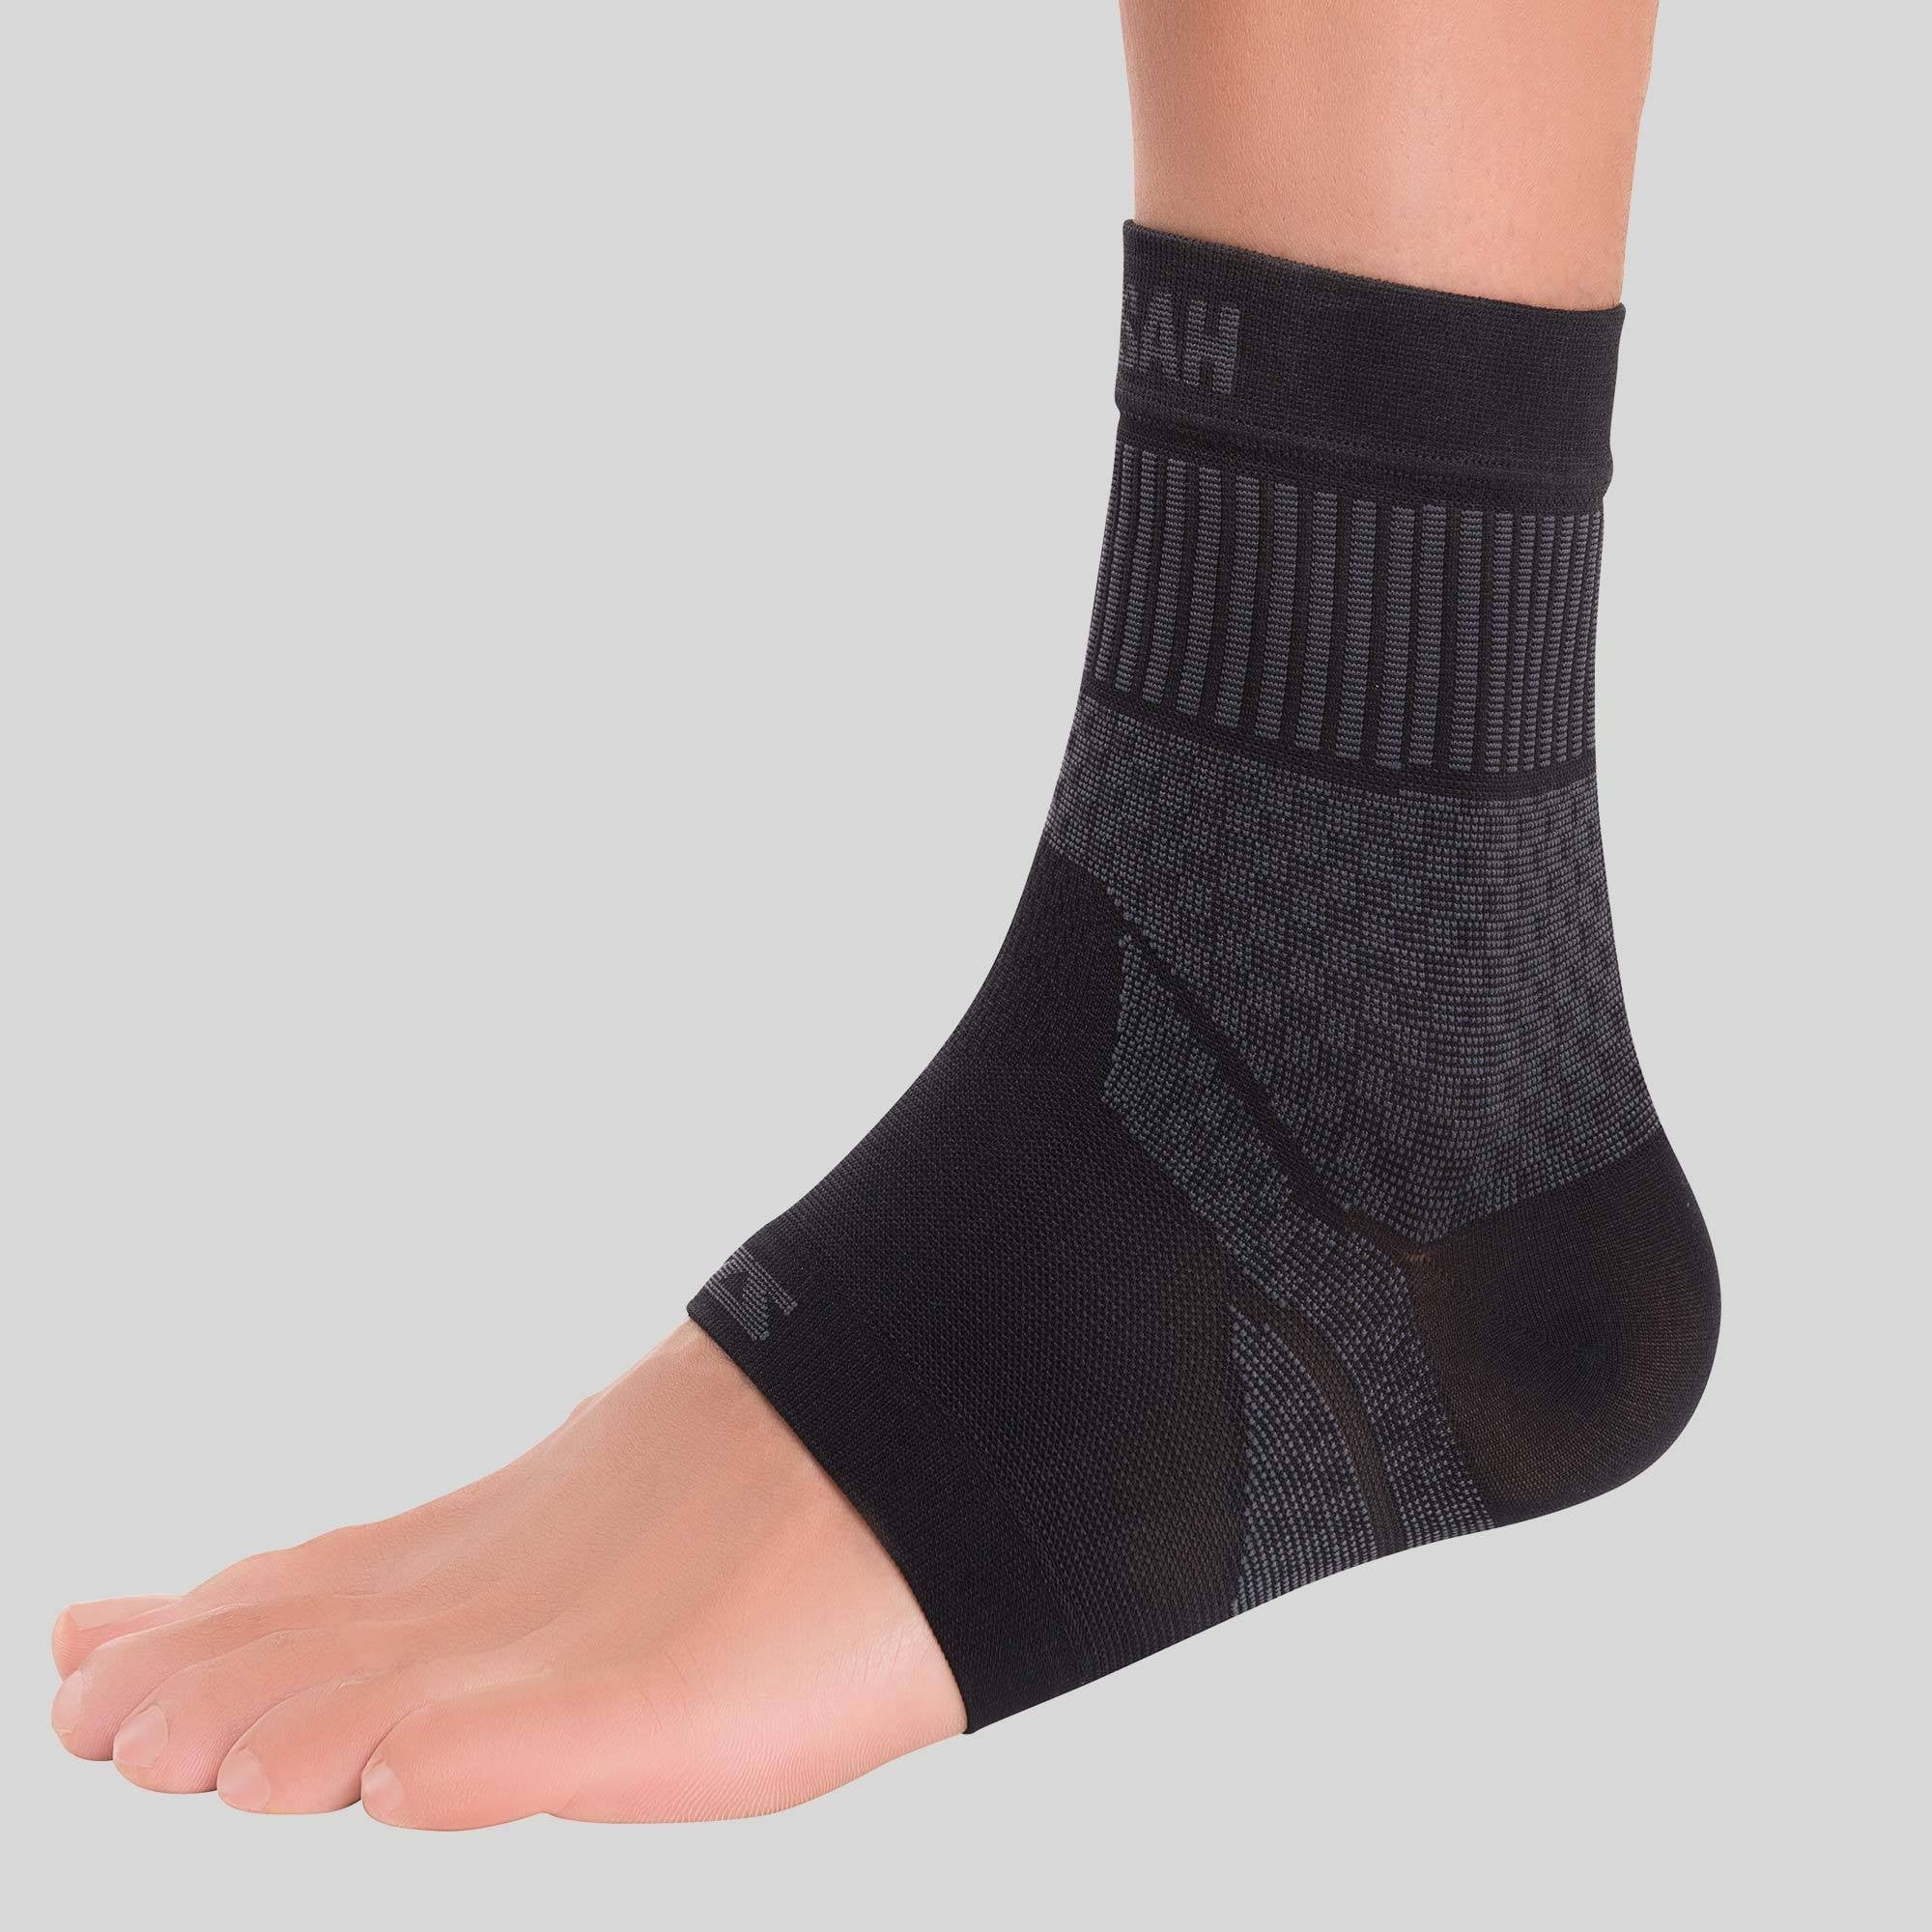 abcbc22efa8 Compression Ankle Support - Sleeve